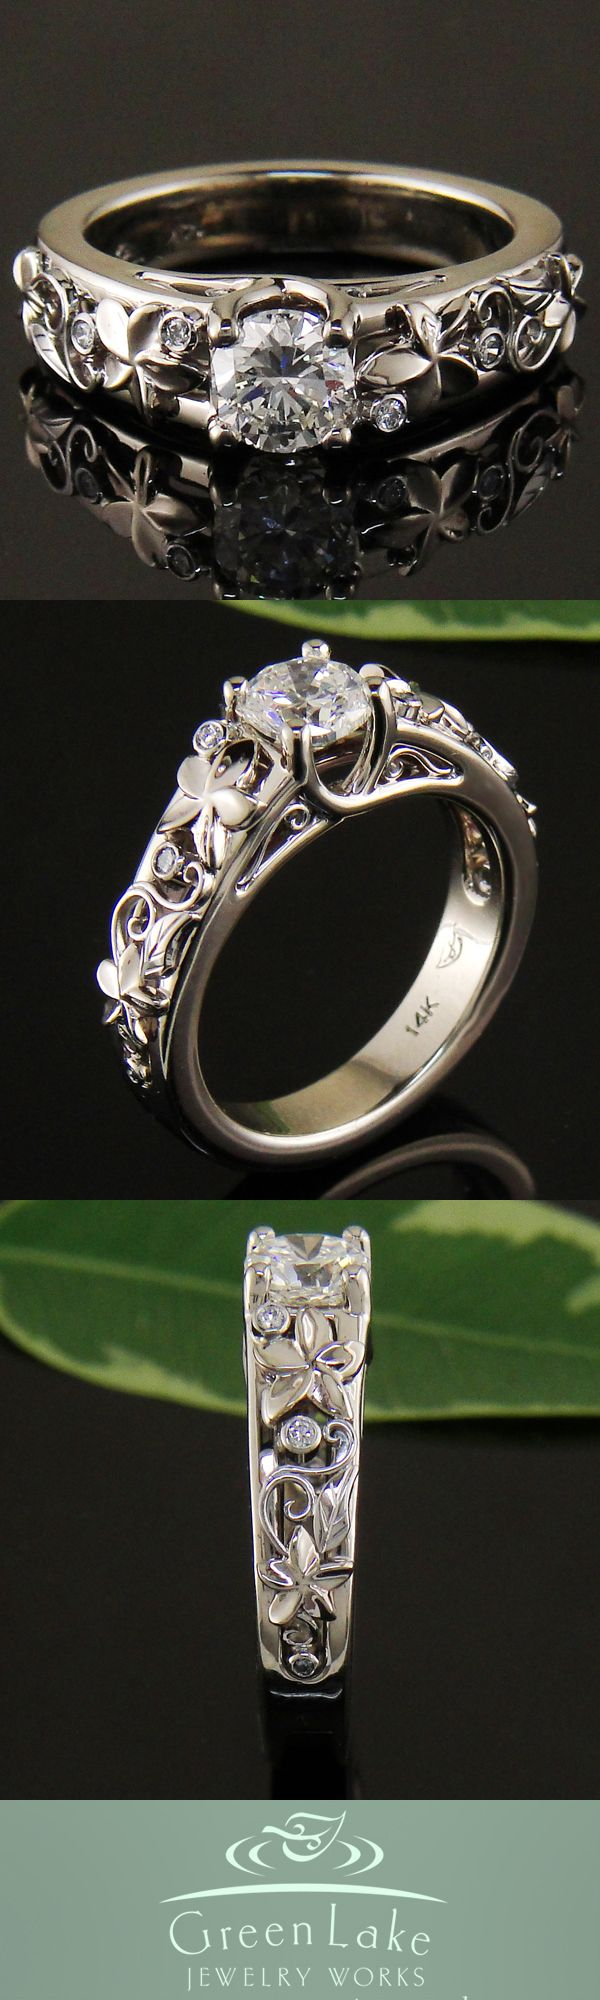 Custom 14k white gold plumeria ring with diamond center stone.